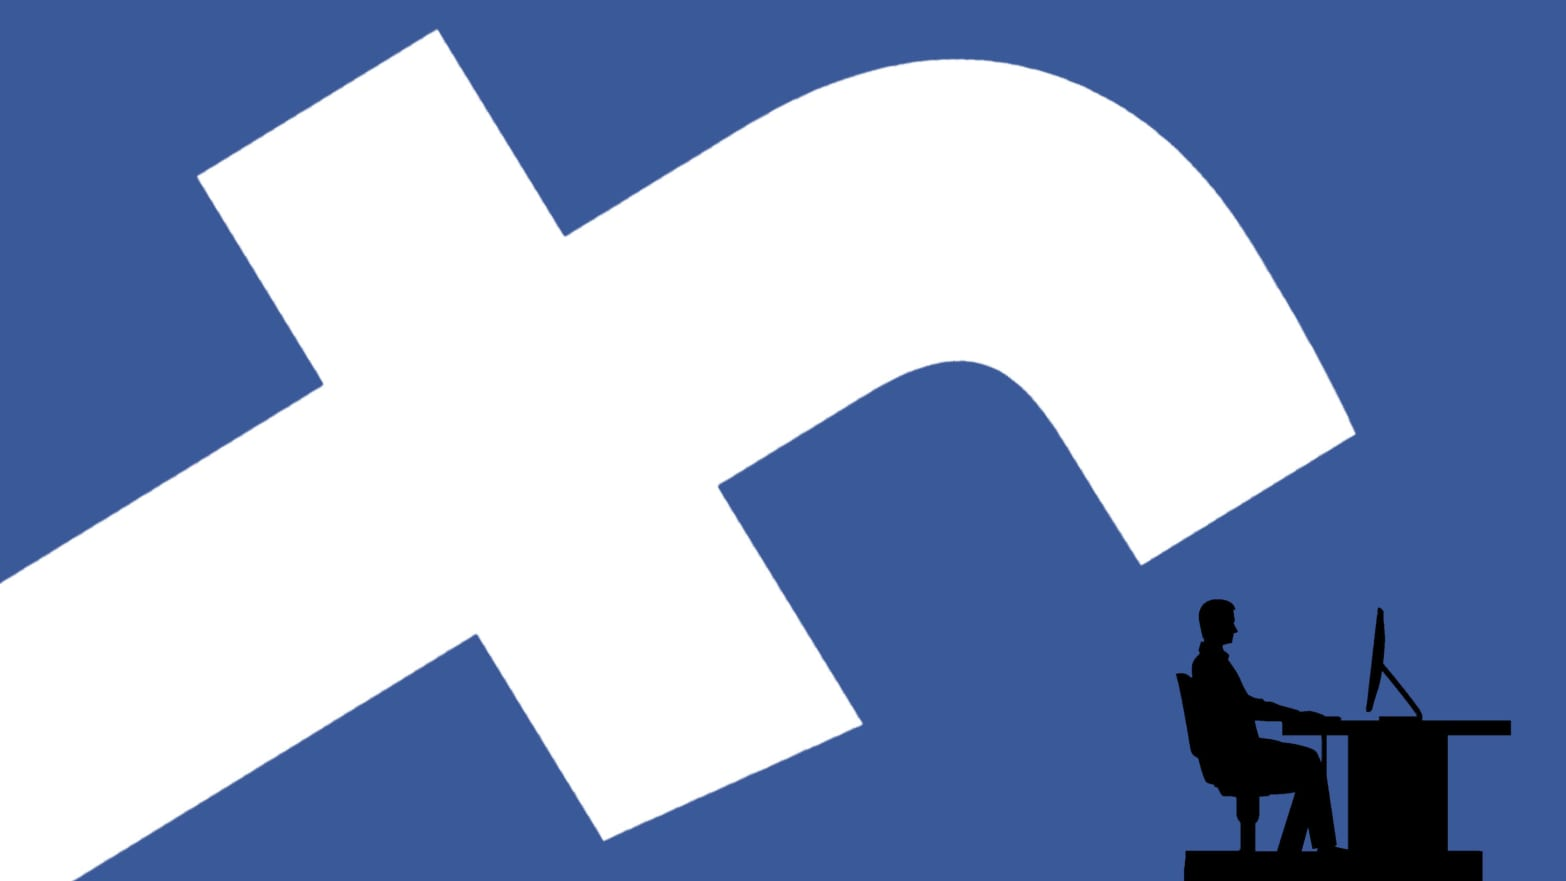 Facebook's Still Spying on You. The Only Way to Stop It Is to Destroy Its Data.